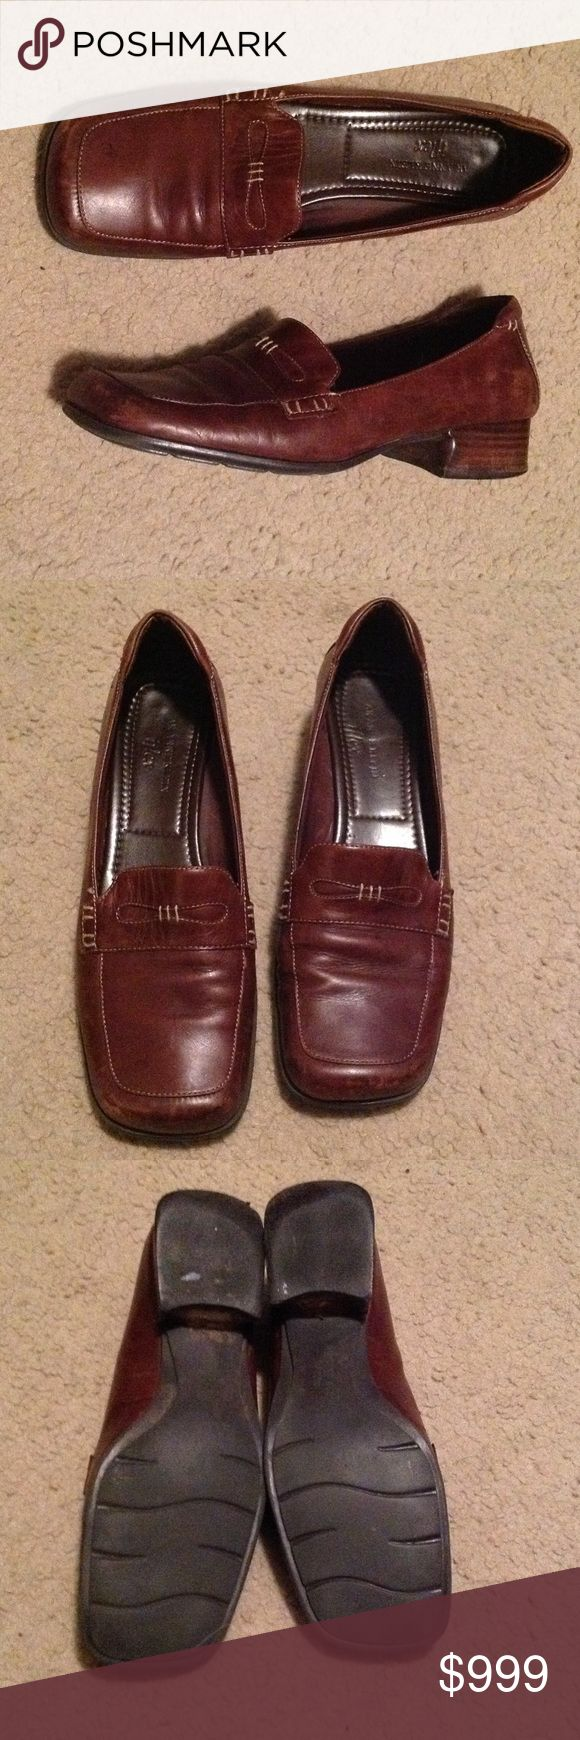 AK Anne Klein iFlex Shoes Anne Klein shoes up for grabs! Super comfy, like butter shoes. Size 8.5, but feels like a large 8.5. Used, but still awesome! Anne Klein Shoes Flats & Loafers